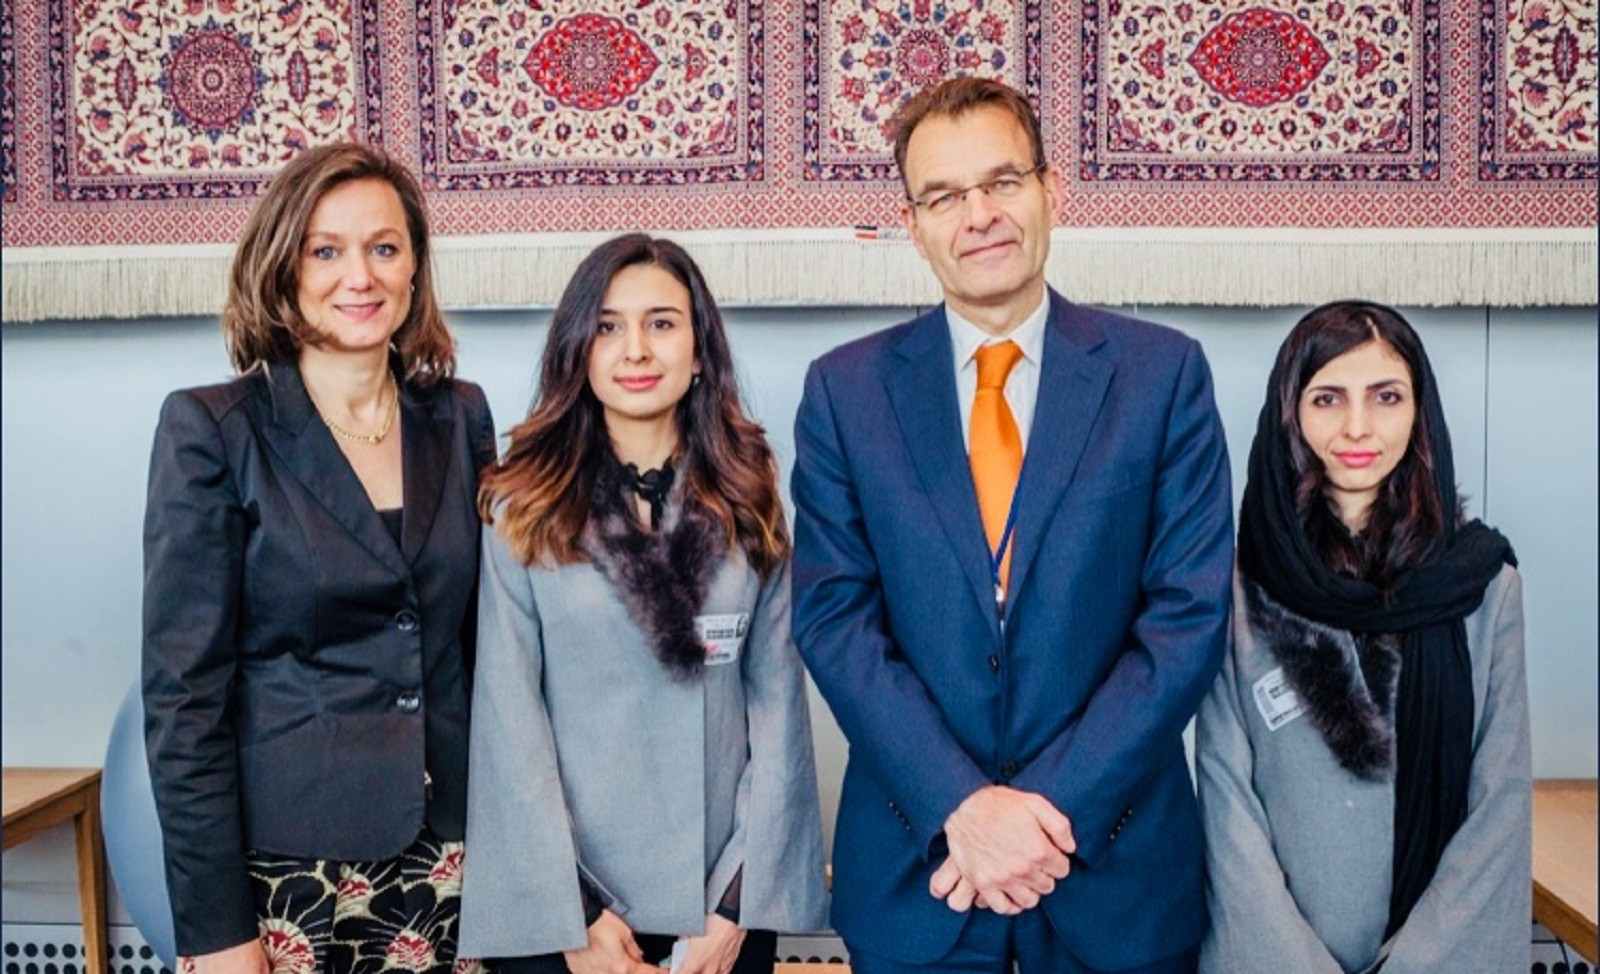 Elaha and her sister with the Deputy Permanent Representative of the Netherlands to the UN Lise Gregoire-van Haaren and Netherlands' Vice Minister of Foreign Affairs H.E. André Haspels.